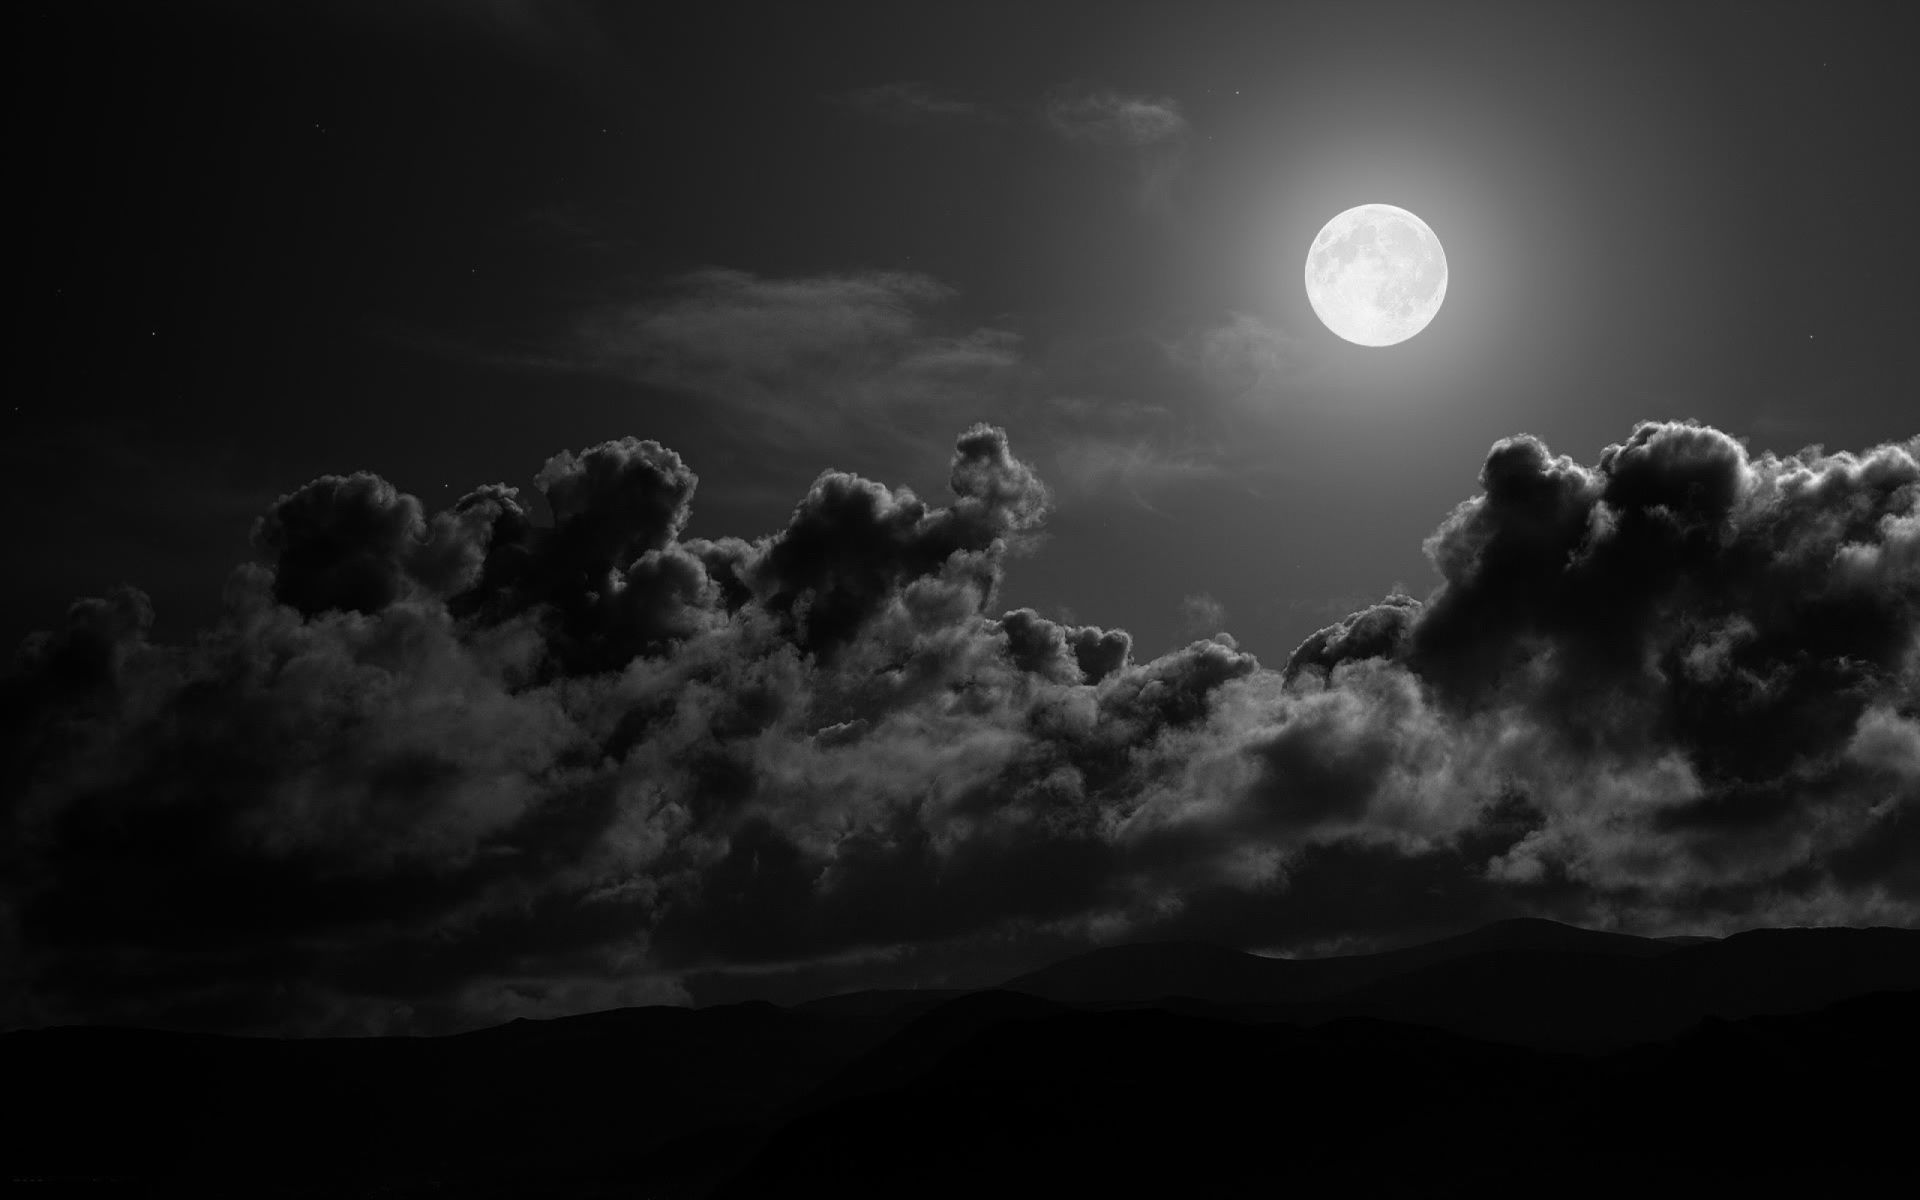 wallpapers full moon night - photo #10